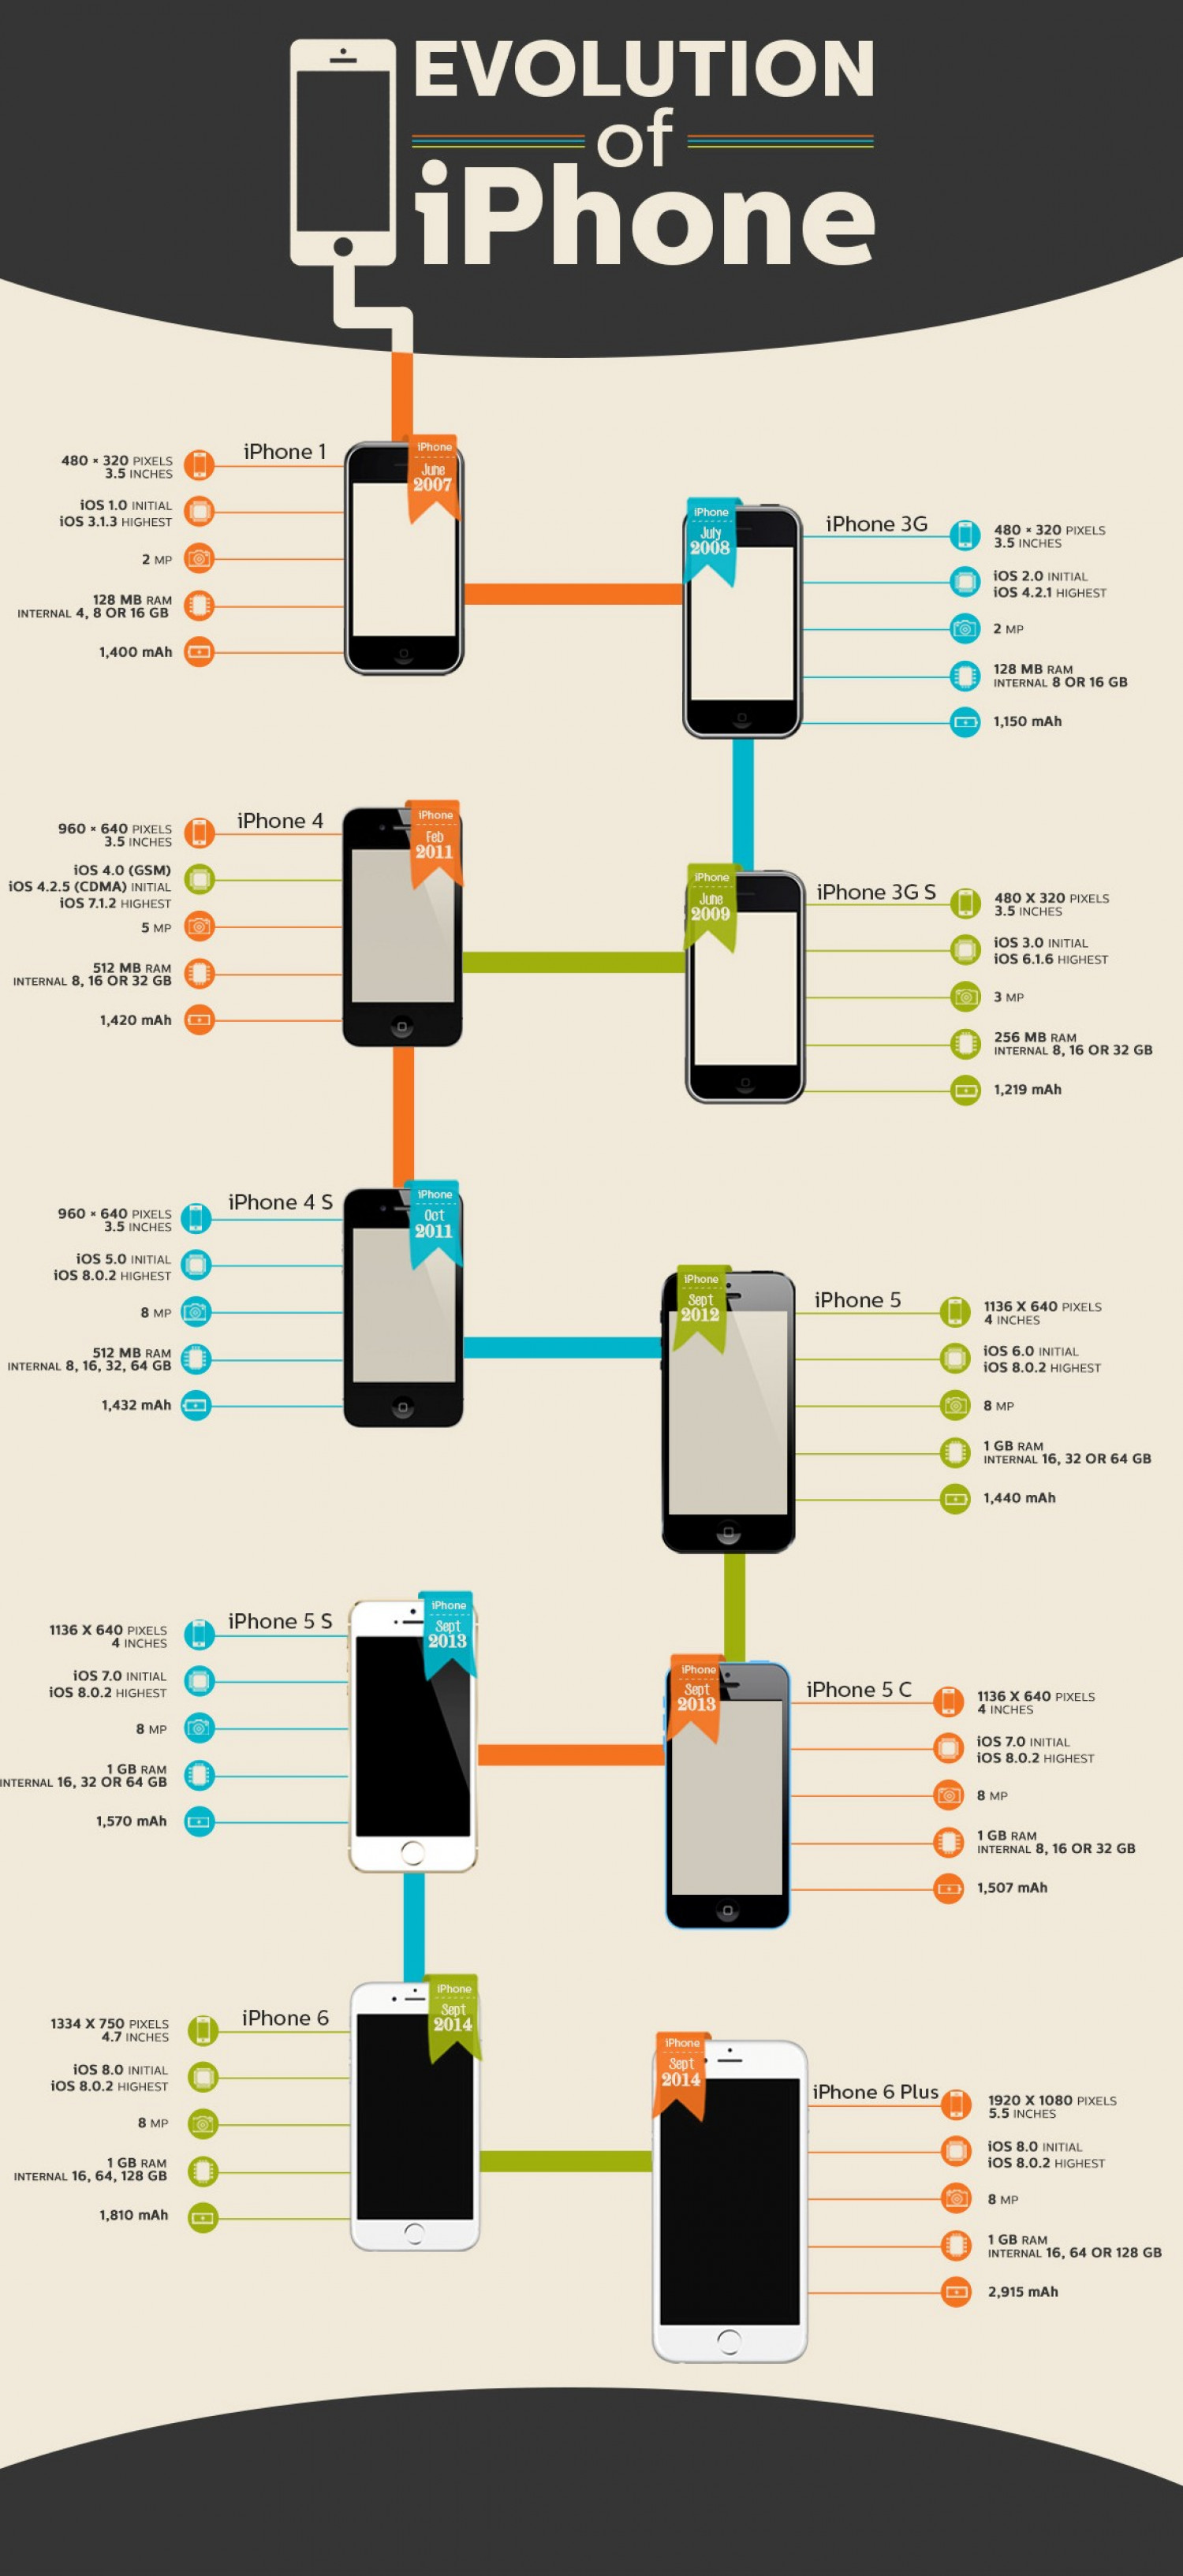 Evolution Of IPhone Specs With Release Dates Infographic